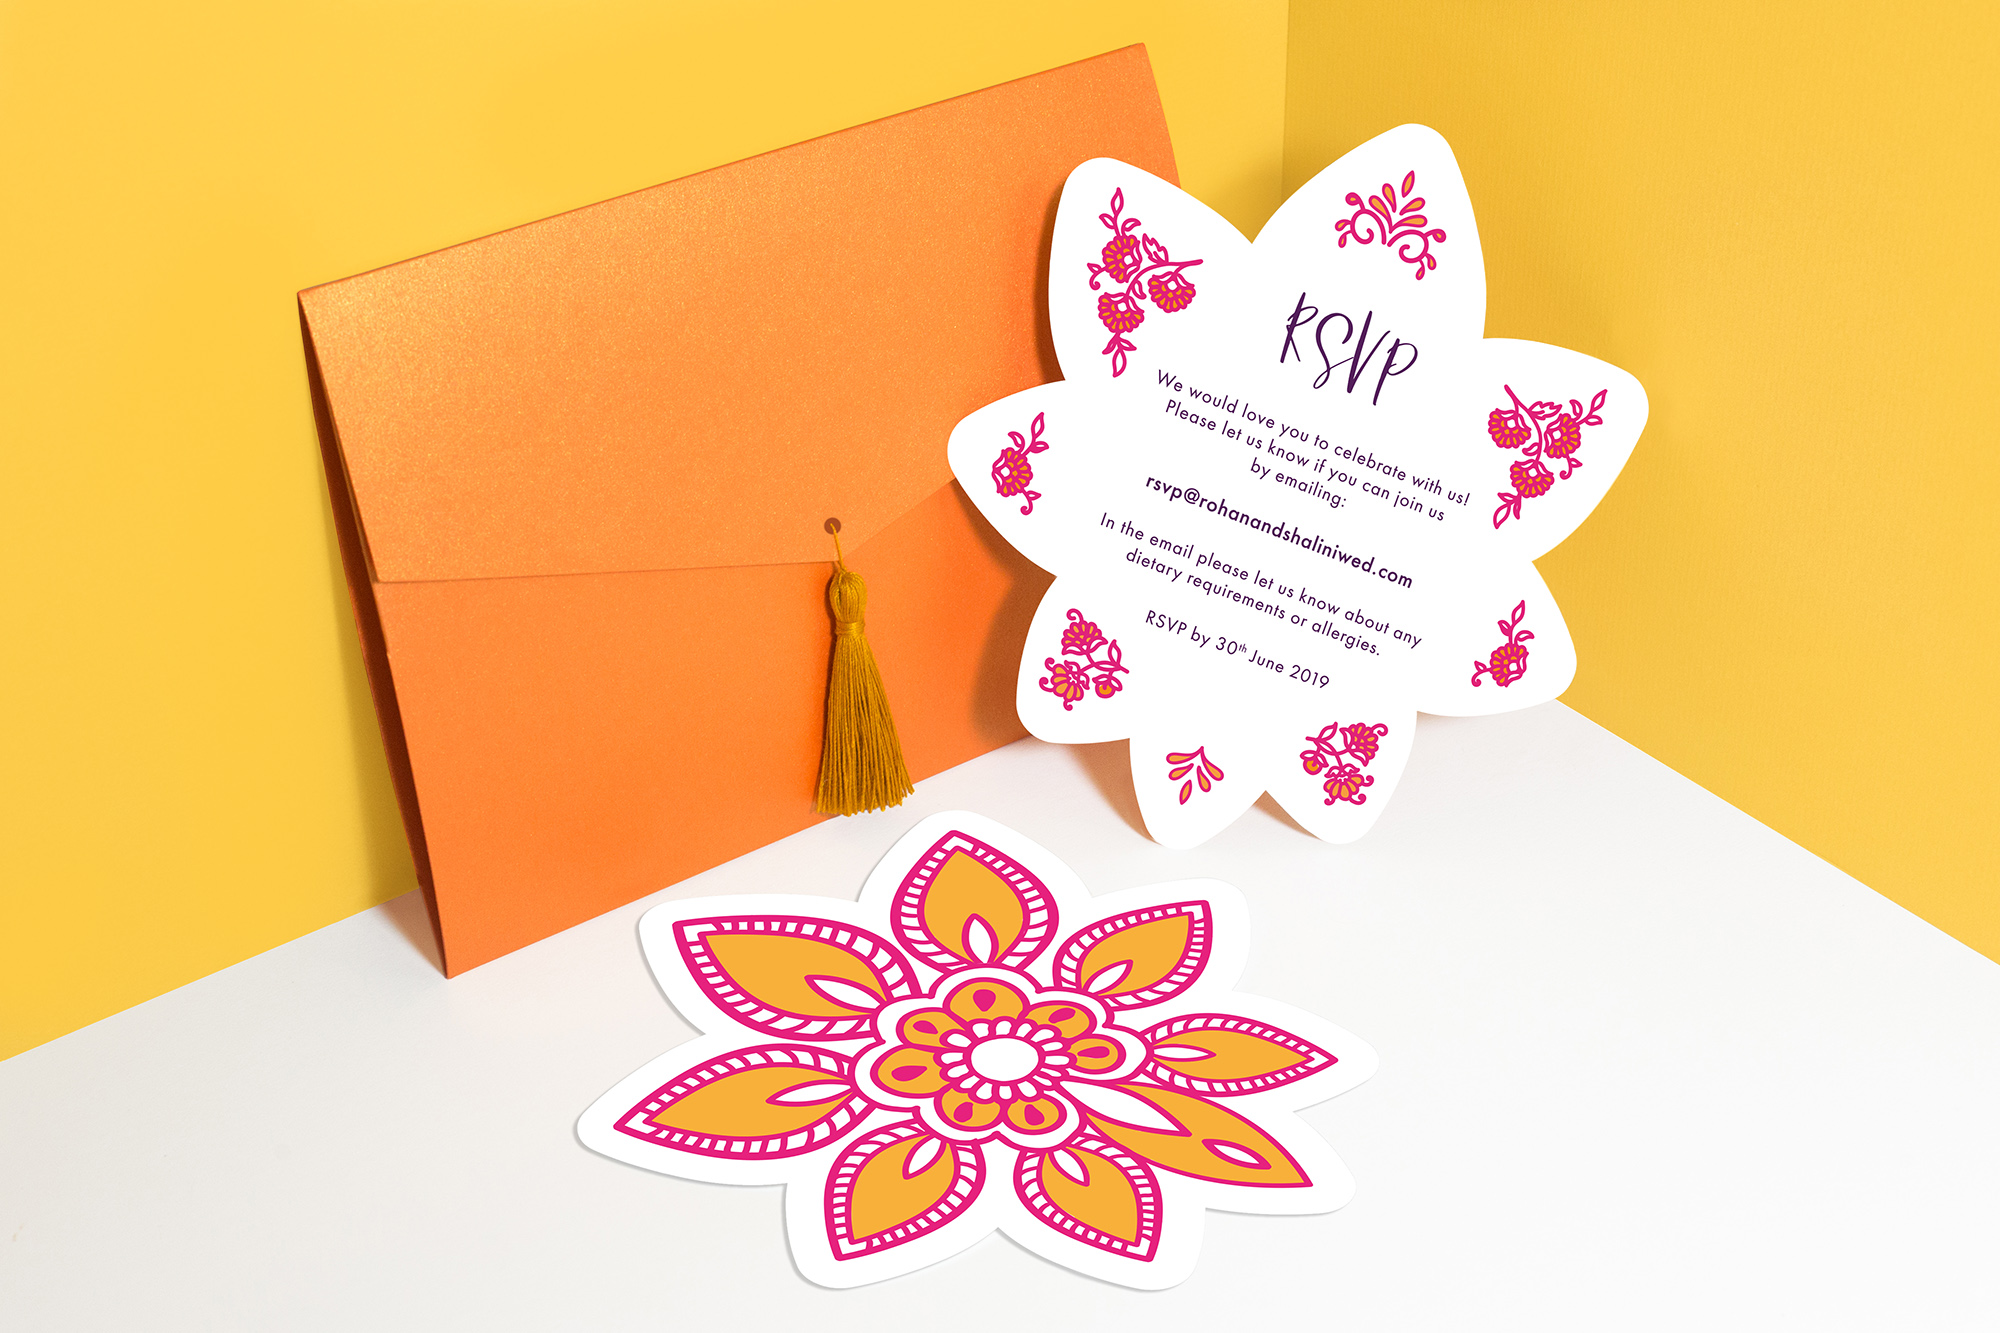 Modern Indian Inspired, colourful untraditional, henna pattern wedding stationary invitation die cut RSVP card with pocket and tassel